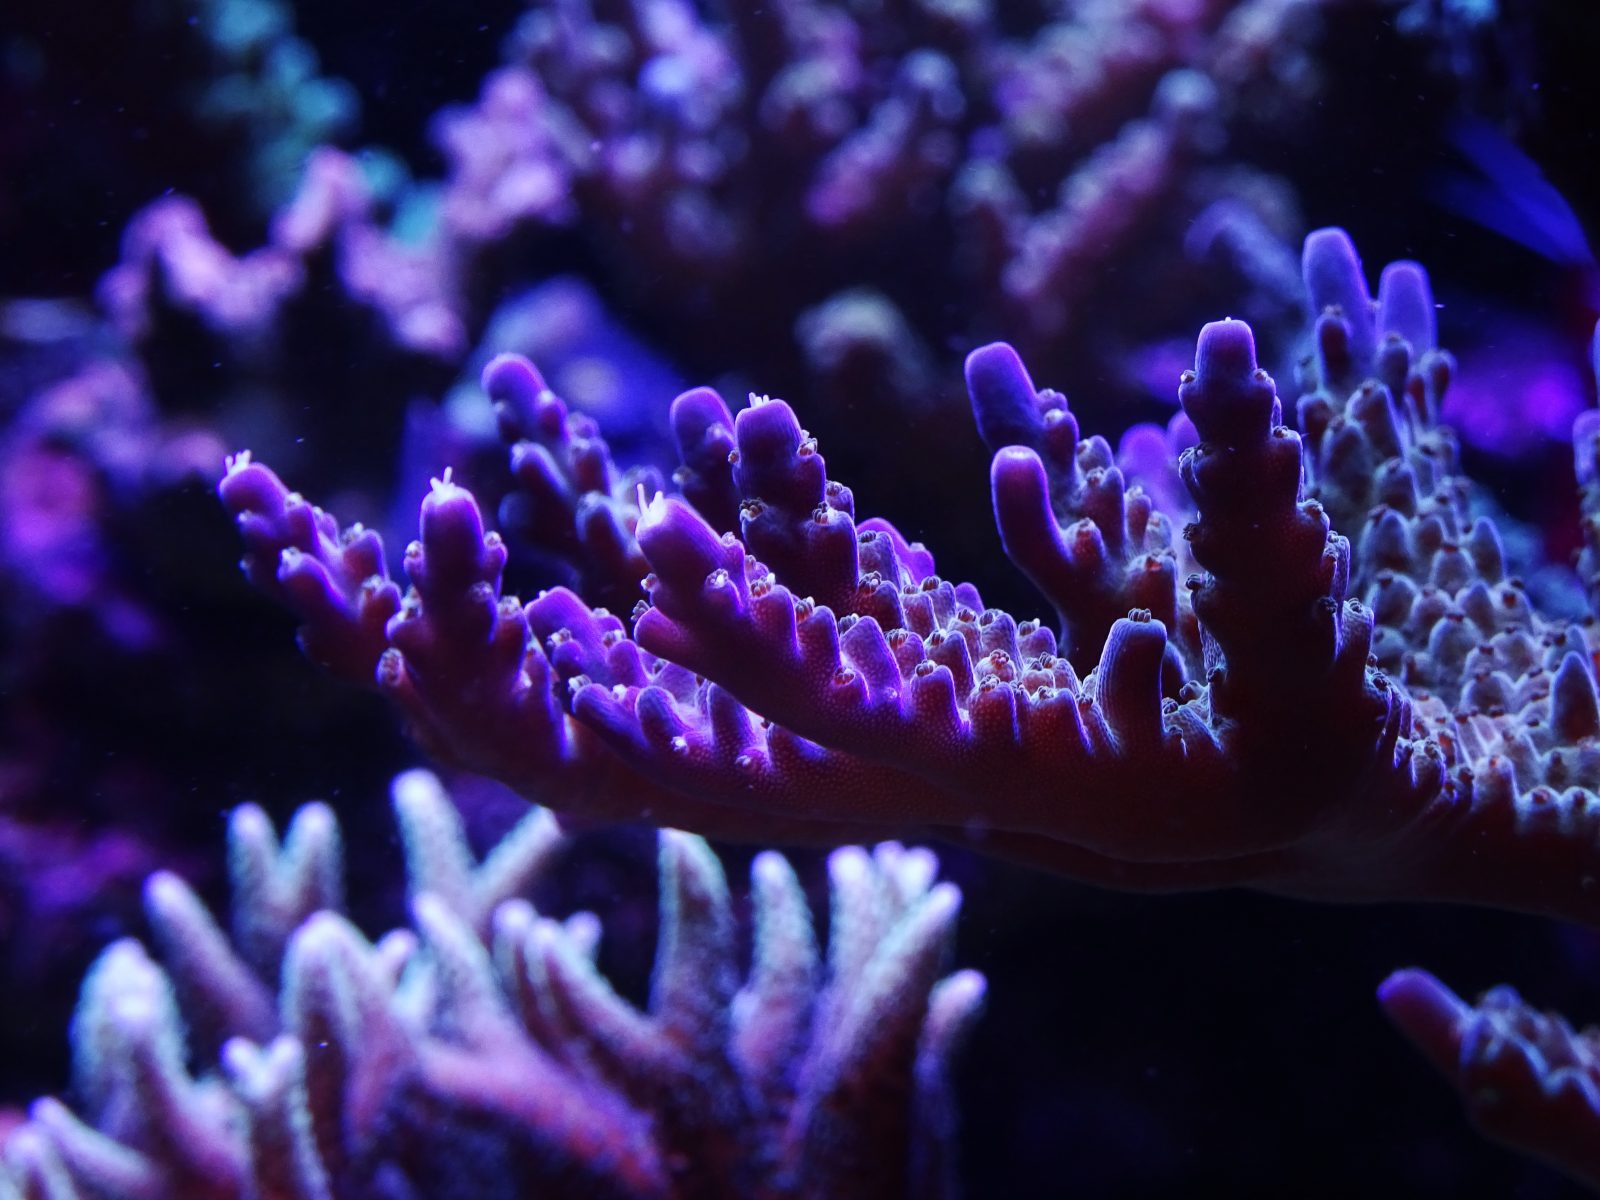 violet-sps-aquarium-LED